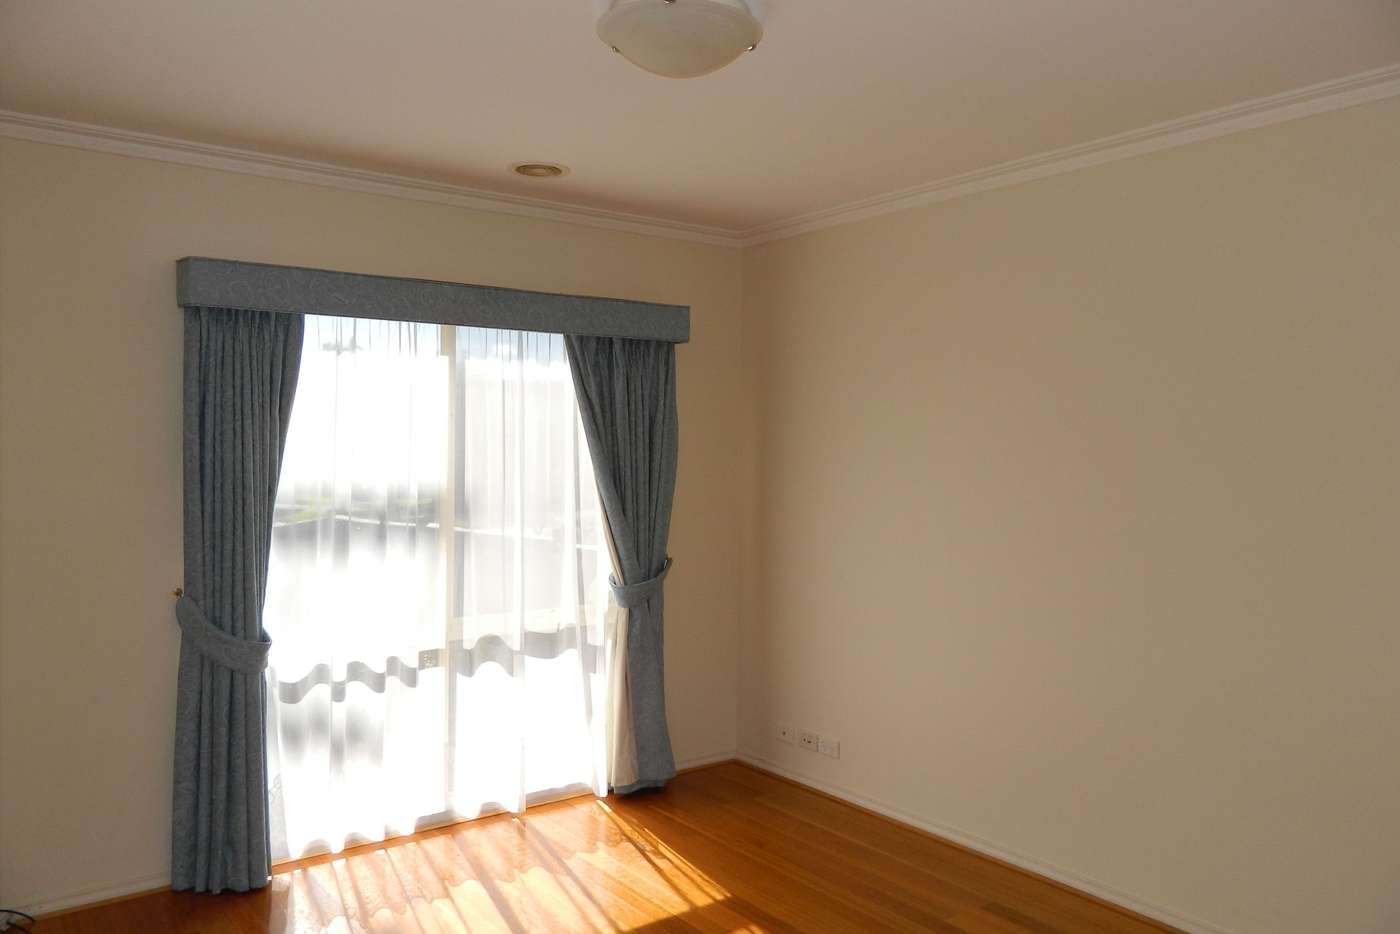 Sixth view of Homely unit listing, 1/12 Emerald Street, Mount Waverley VIC 3149